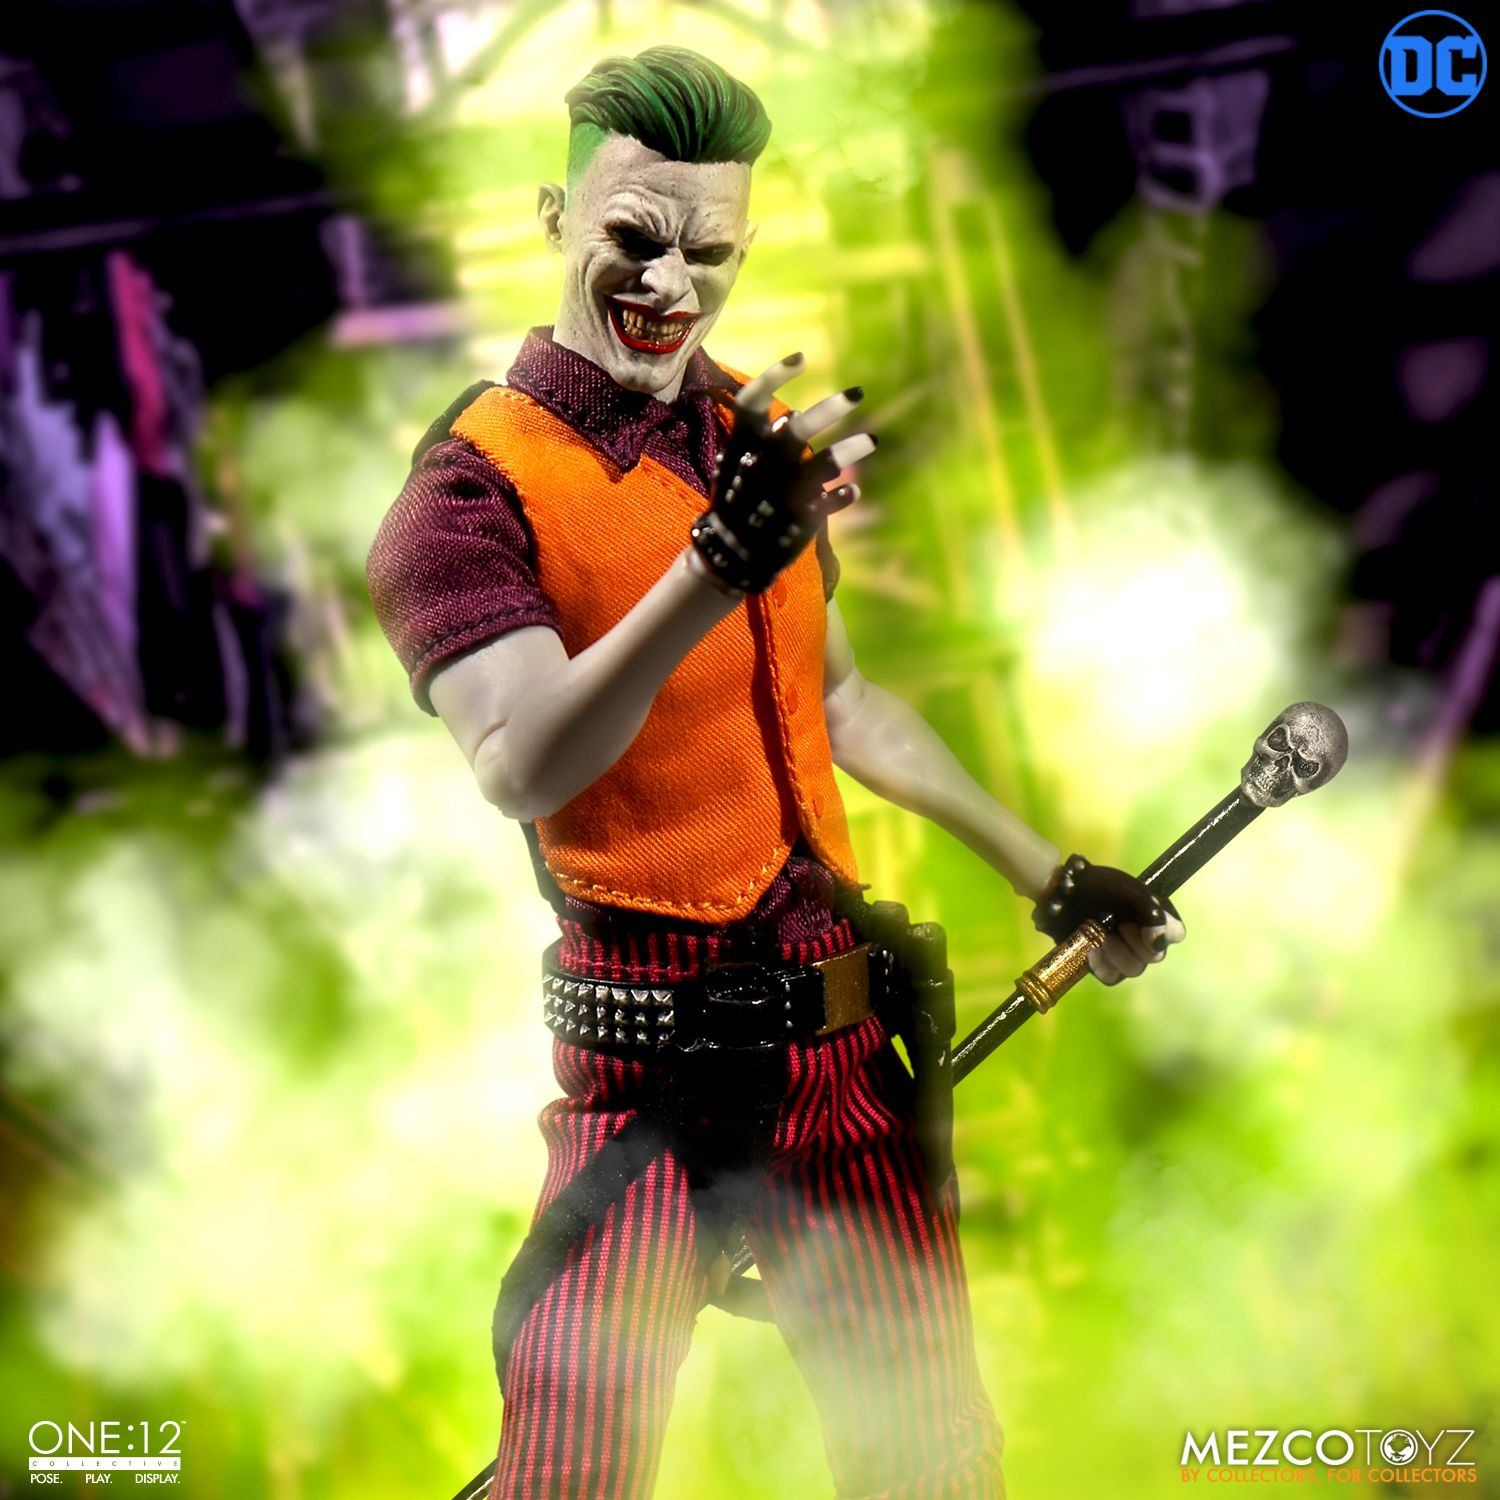 Mezco - One:12 Collection - DC Comics - The Joker (Clown Prince of Crime Edition)